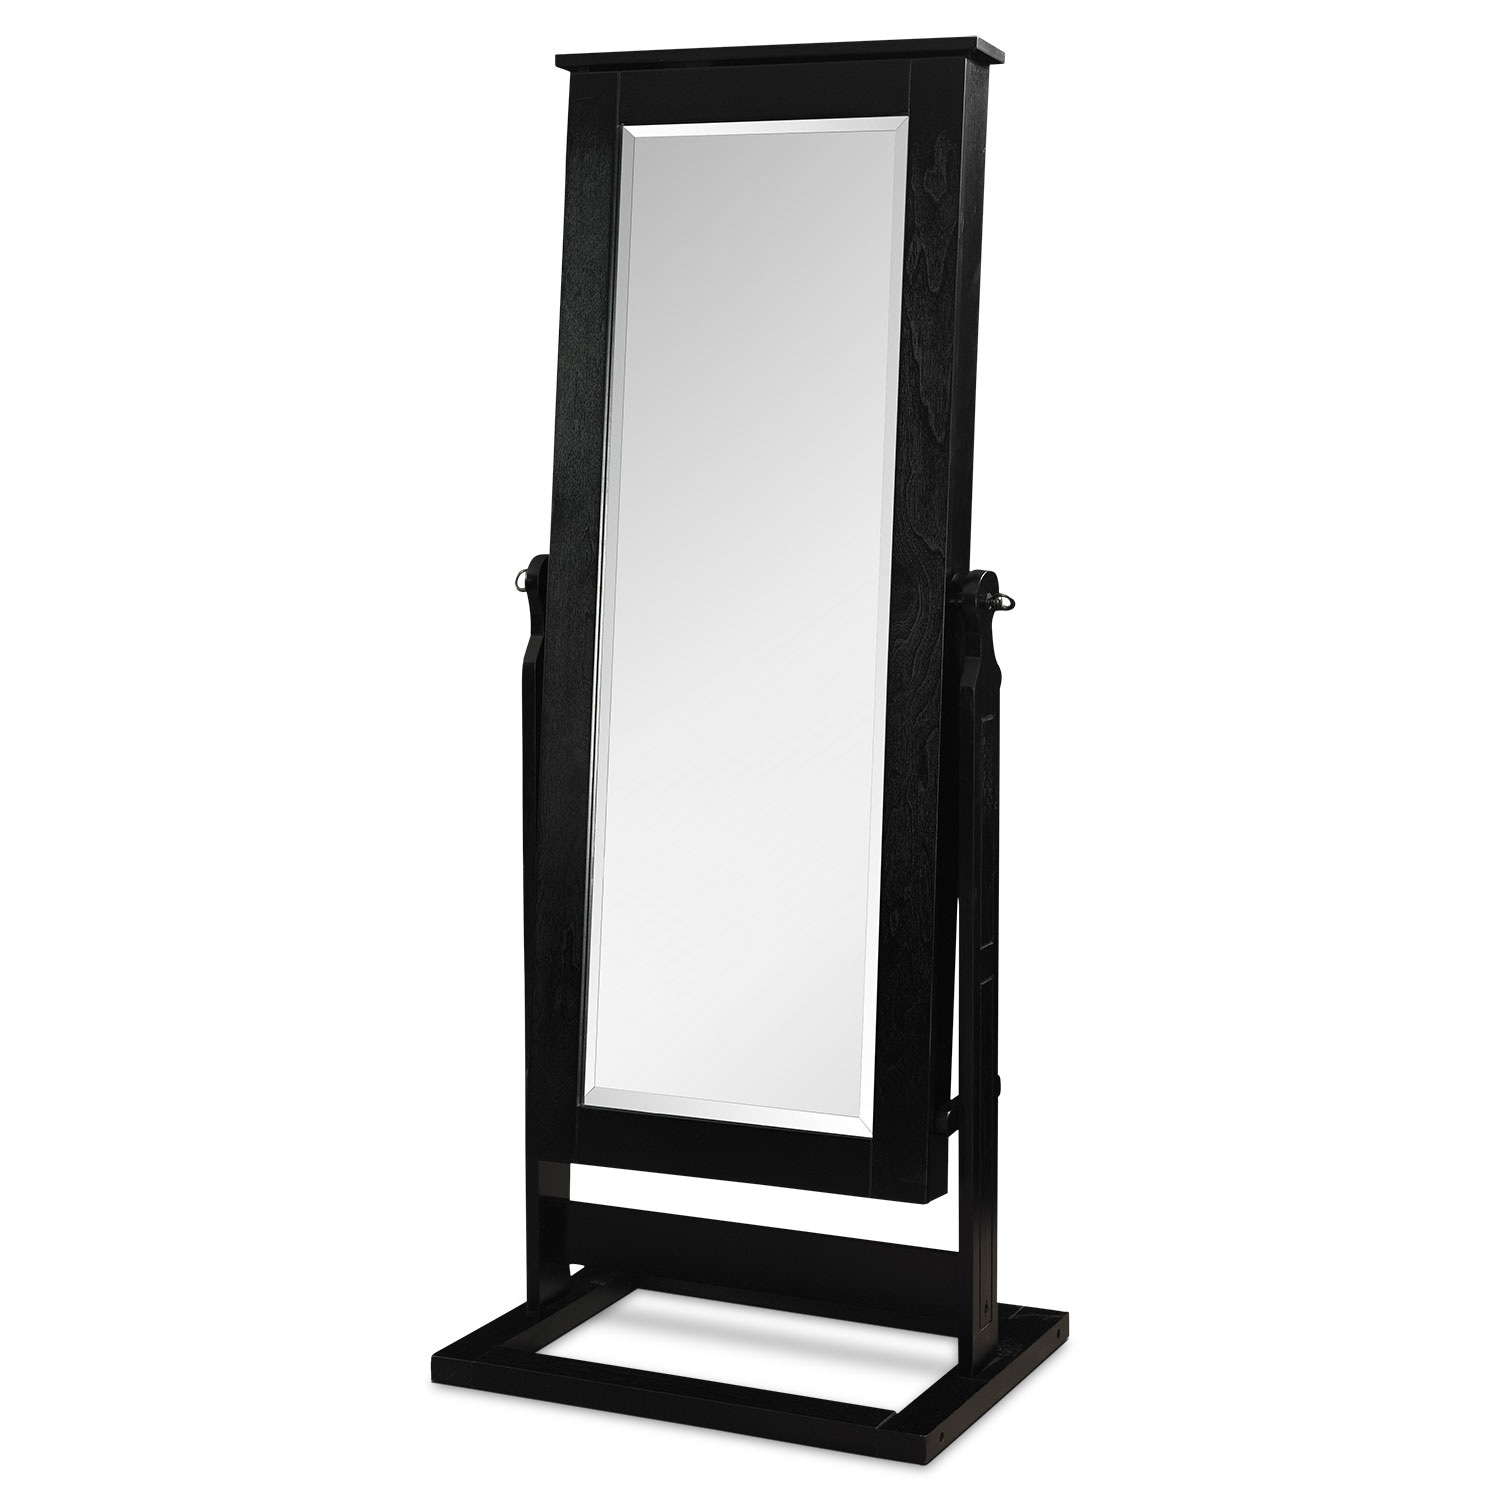 Perrie Cheval Storage Mirror - Black